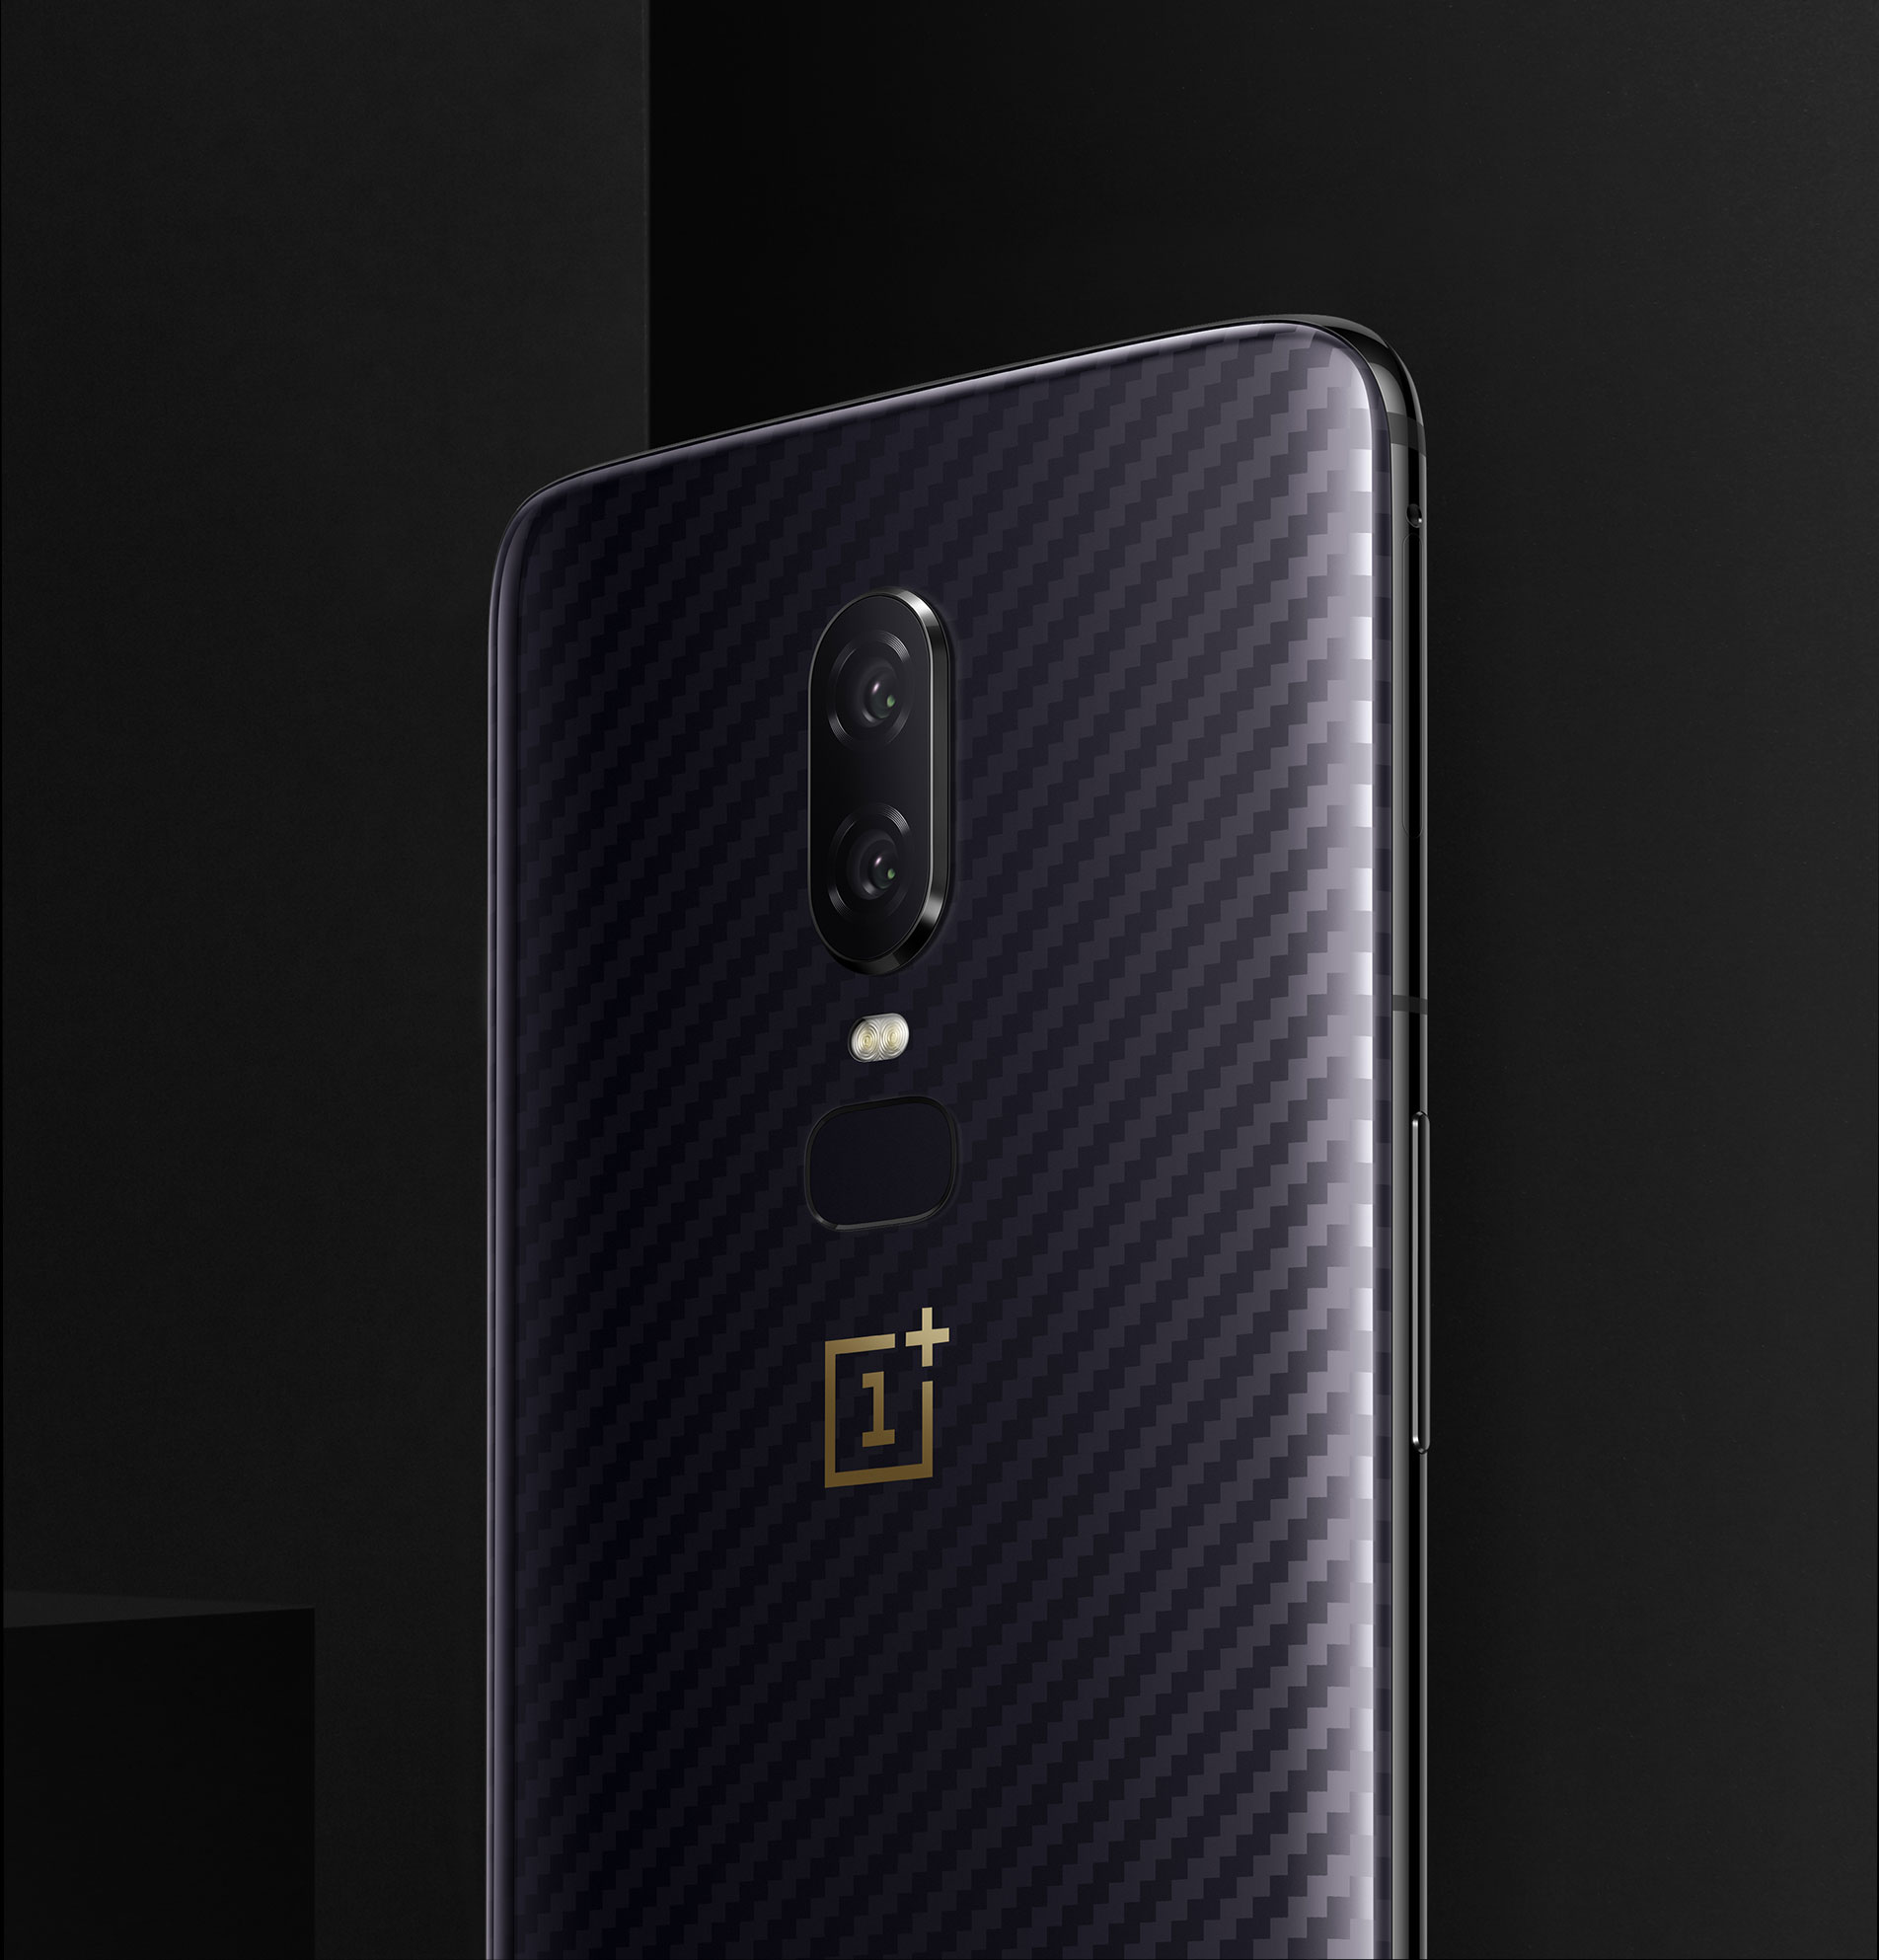 Now Official: This is the OnePlus 6 Avengers: Infinity War Edition 5